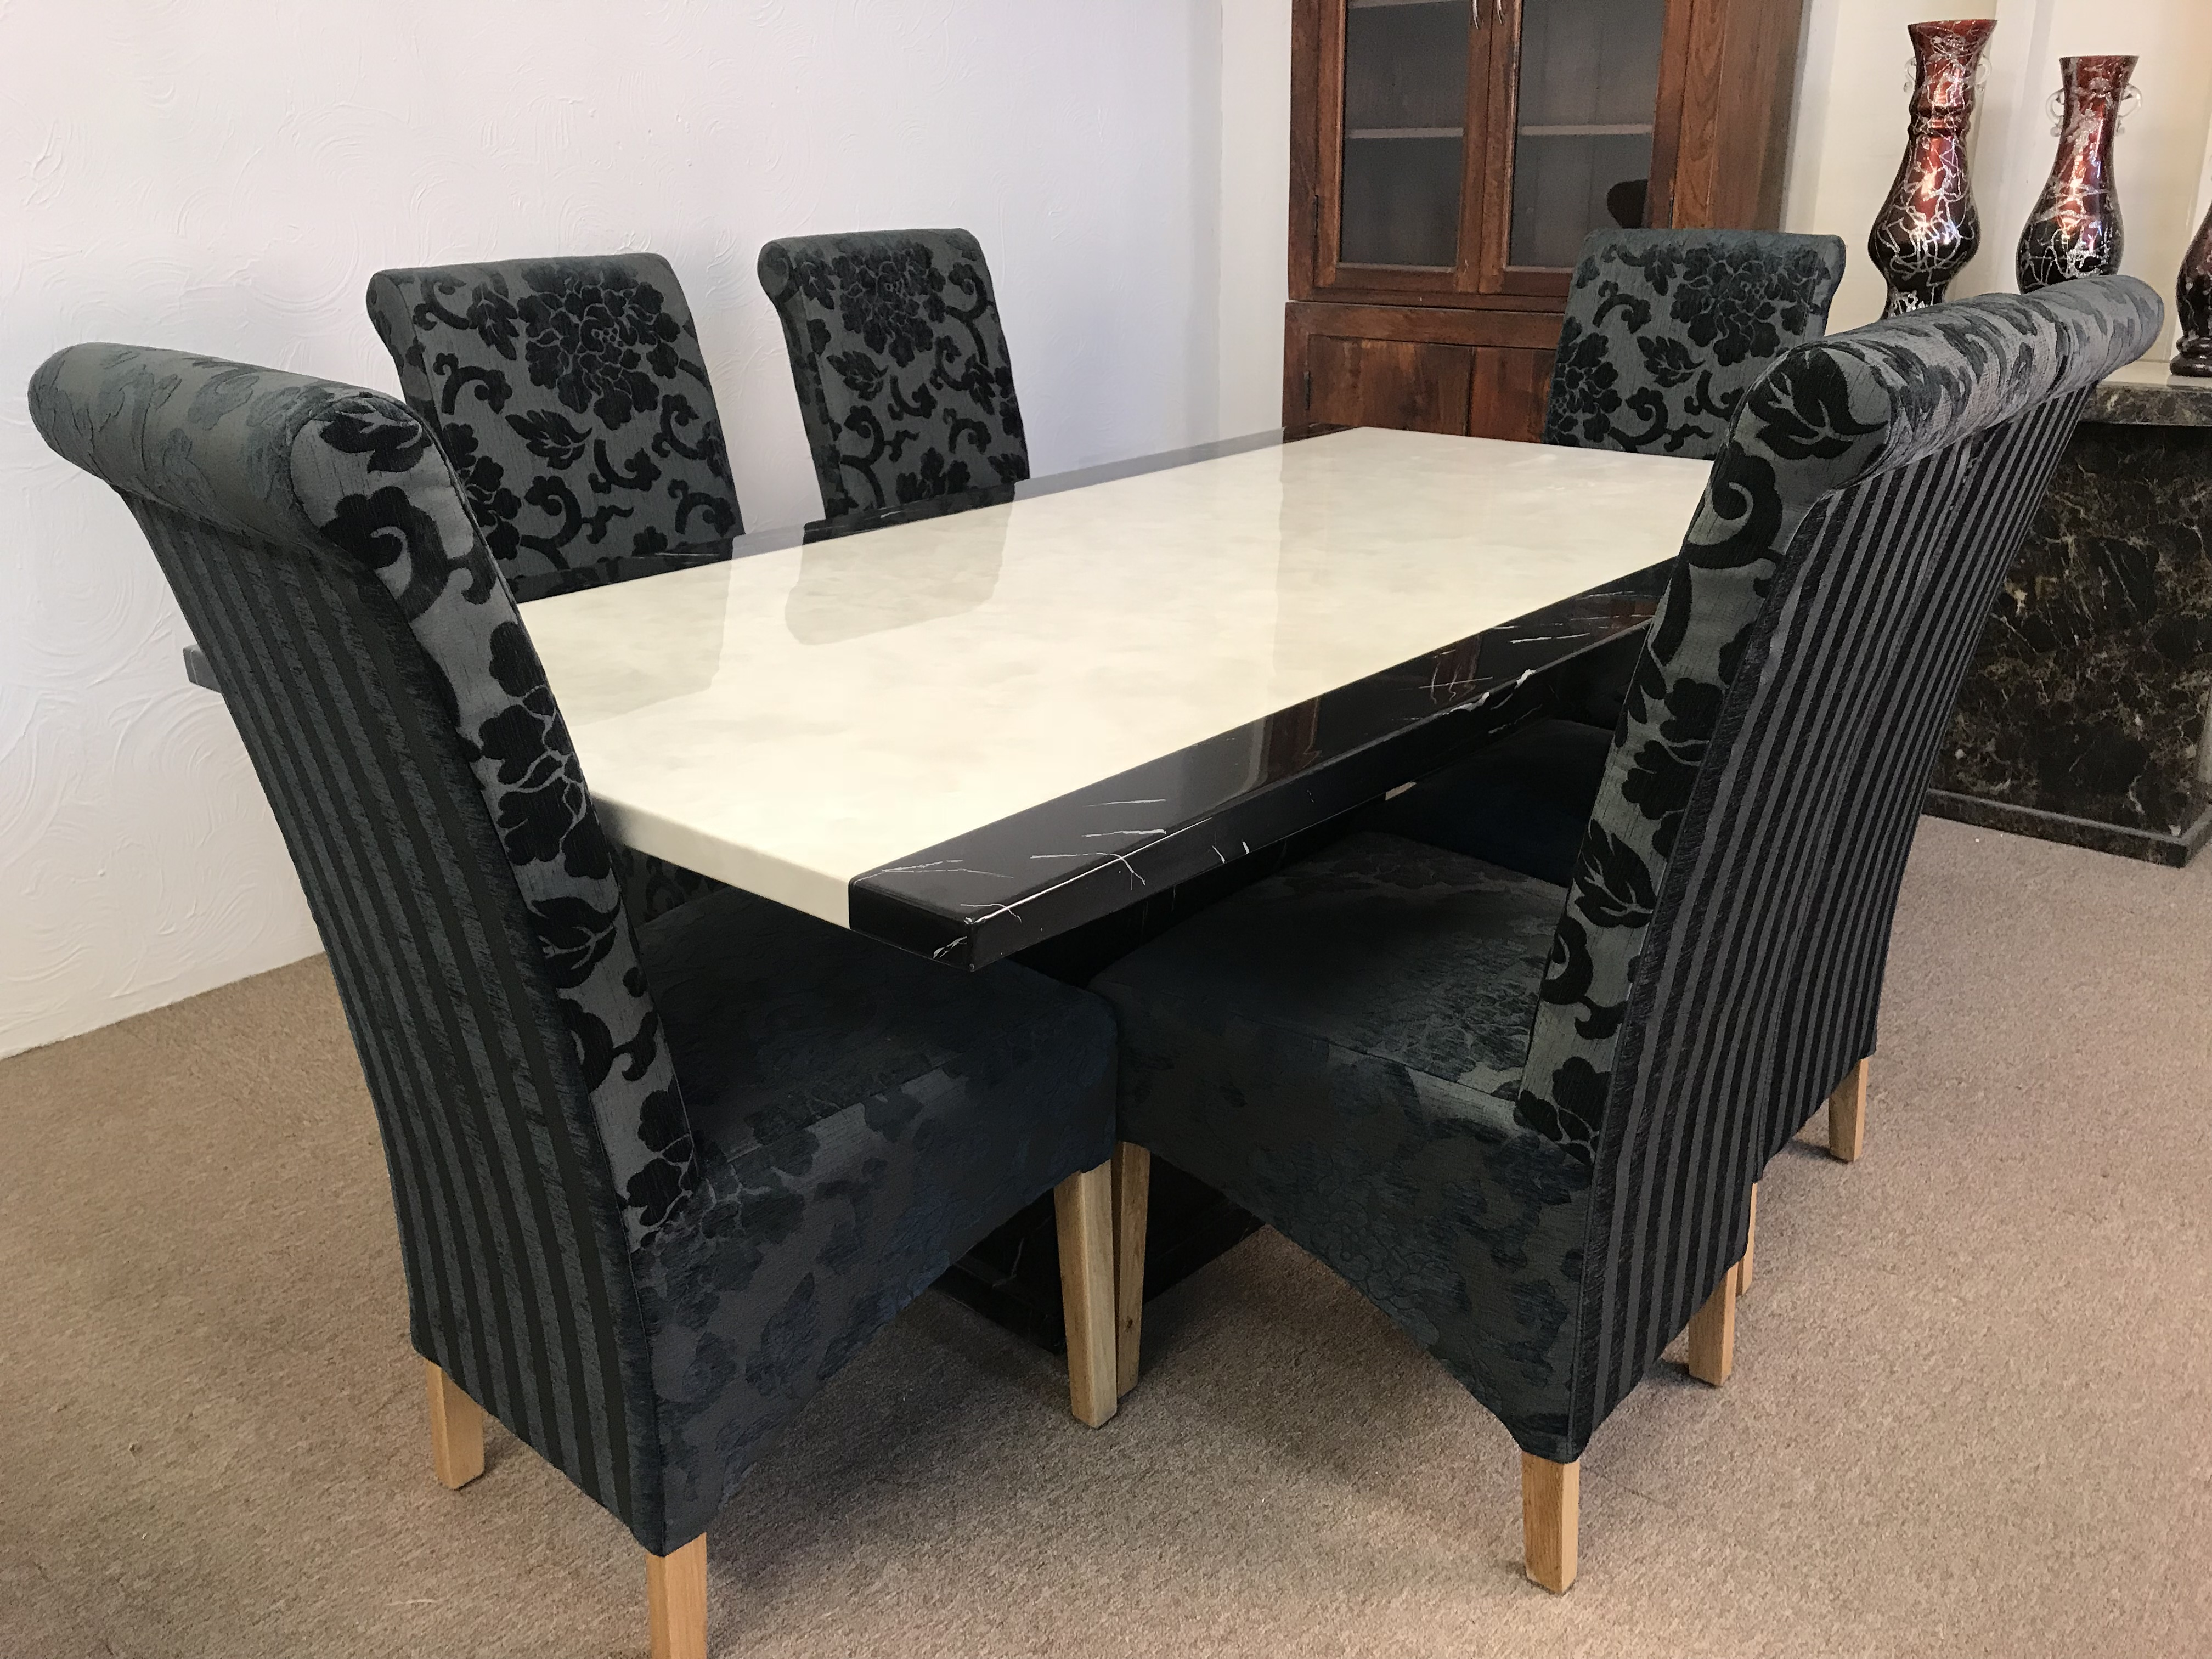 Monaco B W 180cm Marble Dining Table And 6 Black Tall Scrollback Chairs Designer Marble